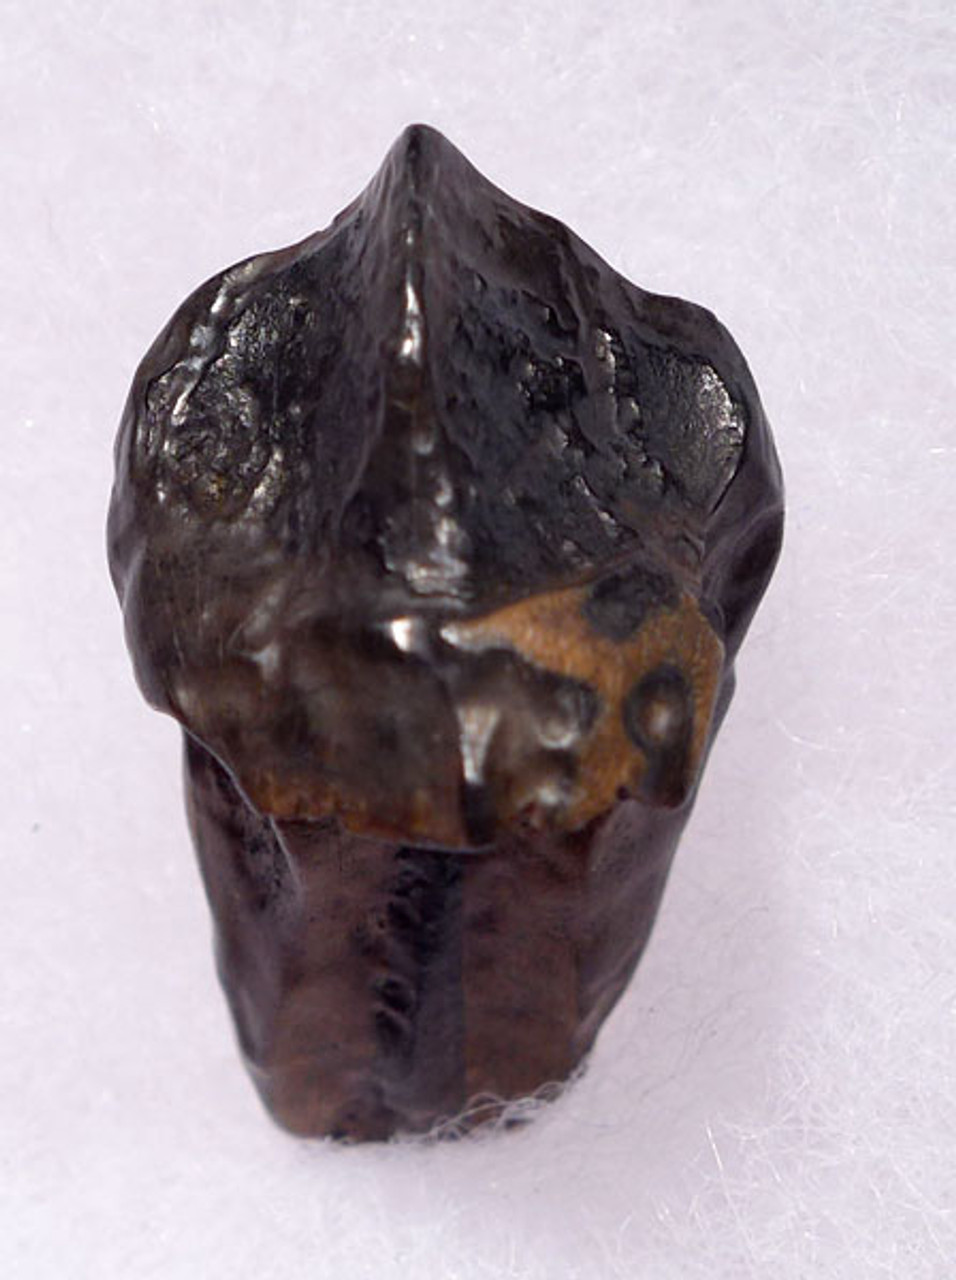 TOP GRADE LARGE TRICERATOPS DINOSAUR TOOTH WITH PARTIAL ROOT AND INTACT CROWN *DT70-013